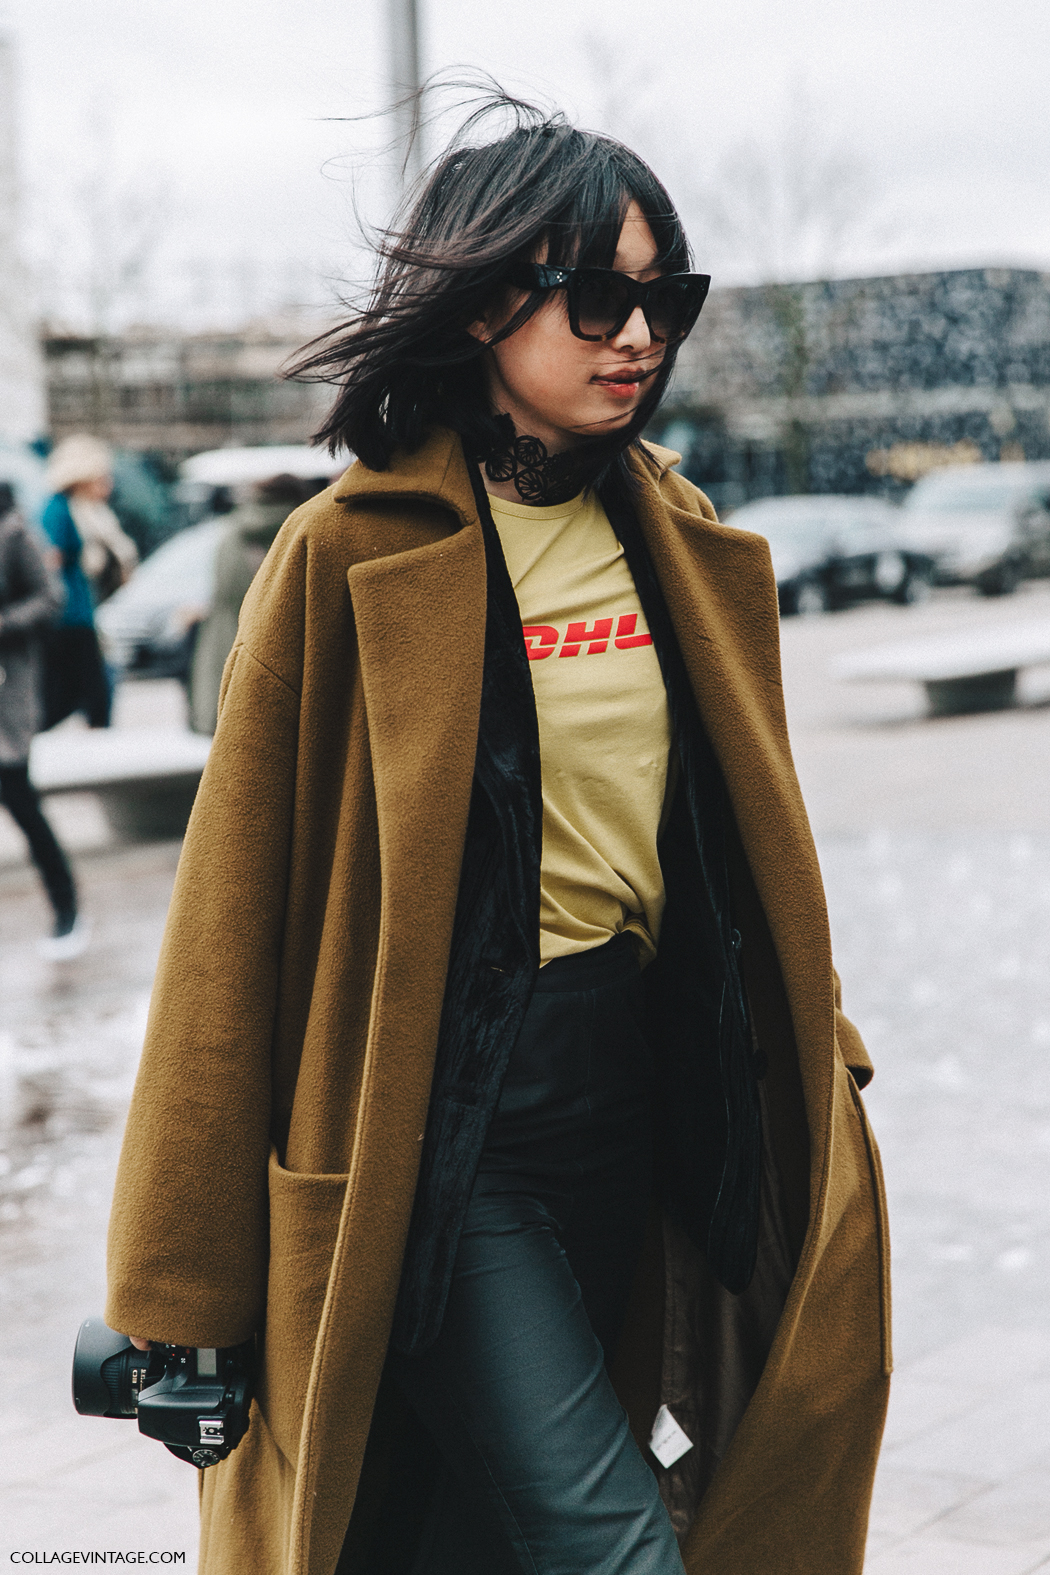 LFW-London_Fashion_Week_Fall_16-Street_Style-Collage_Vintage-Margarret-Zhang-Camel-DHL_Top-1